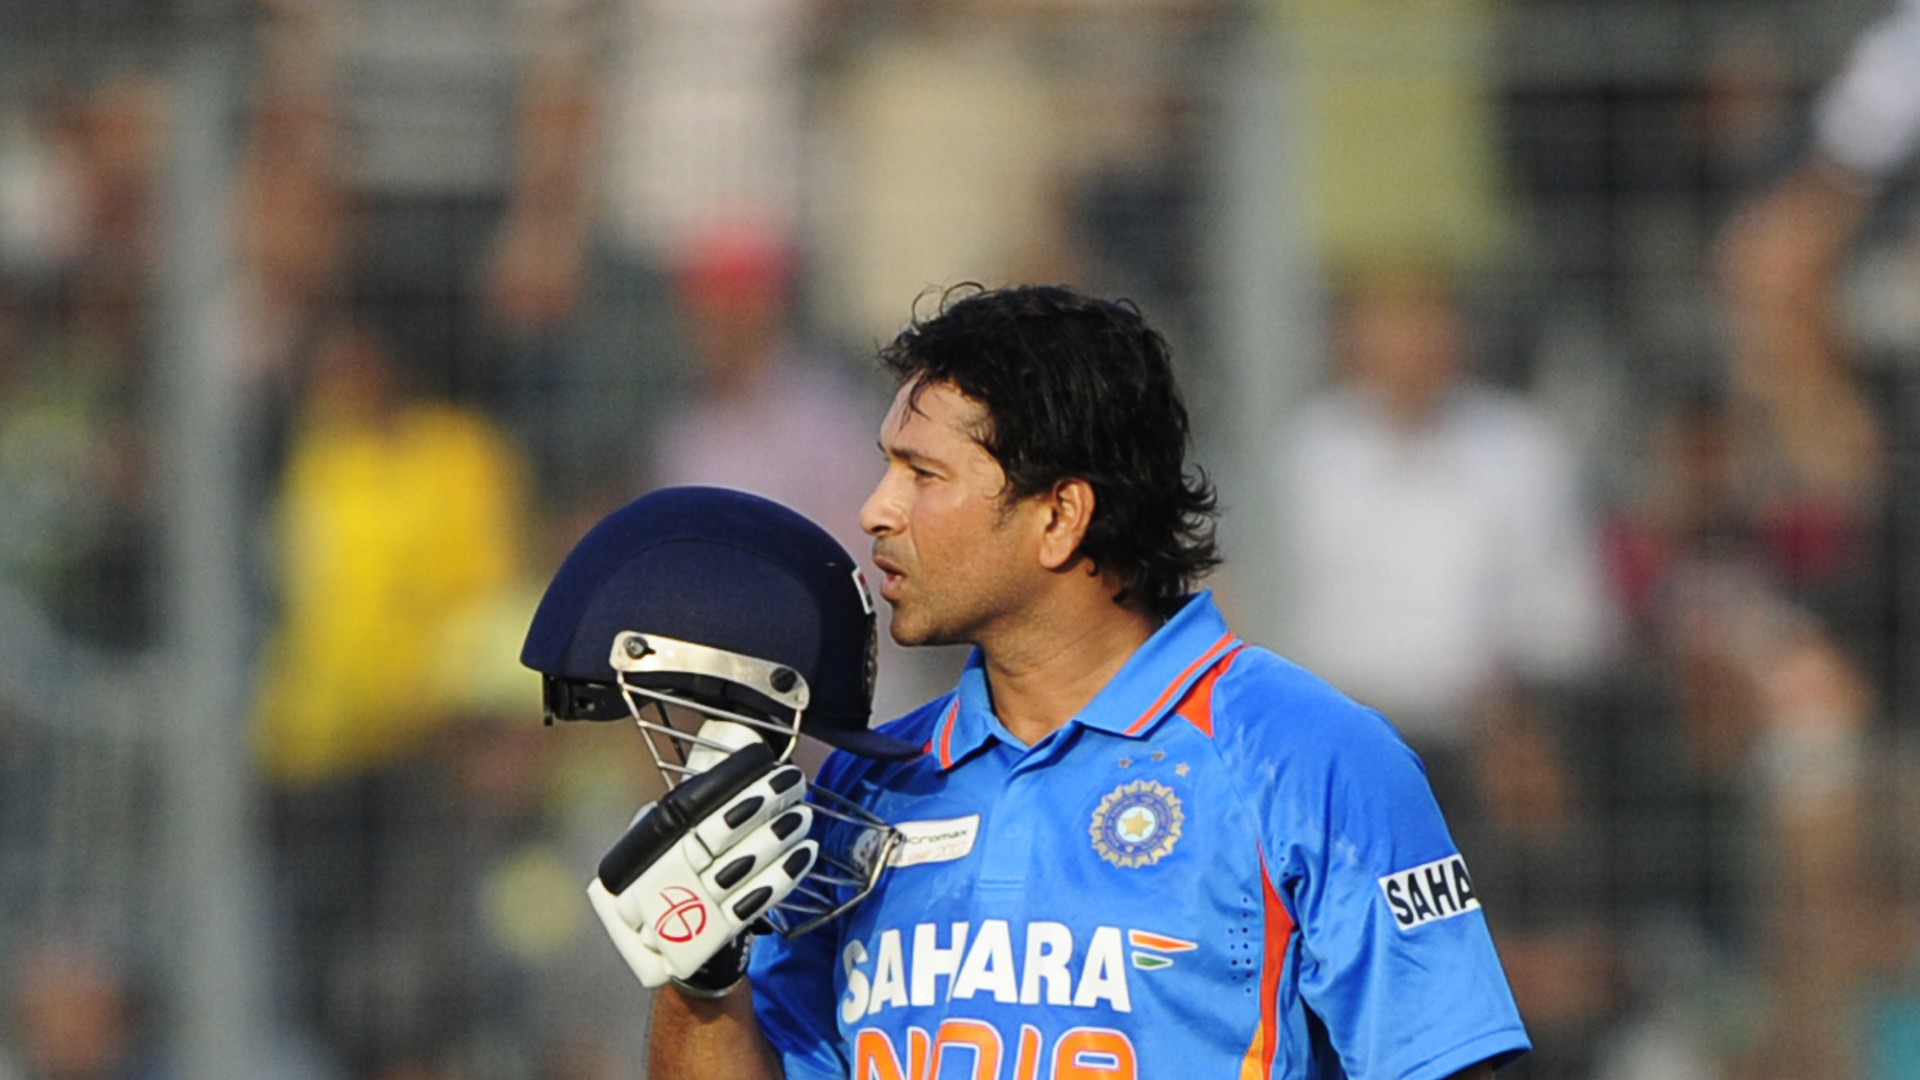 sachin tendulkar wallpapers hd free download 1920x1080